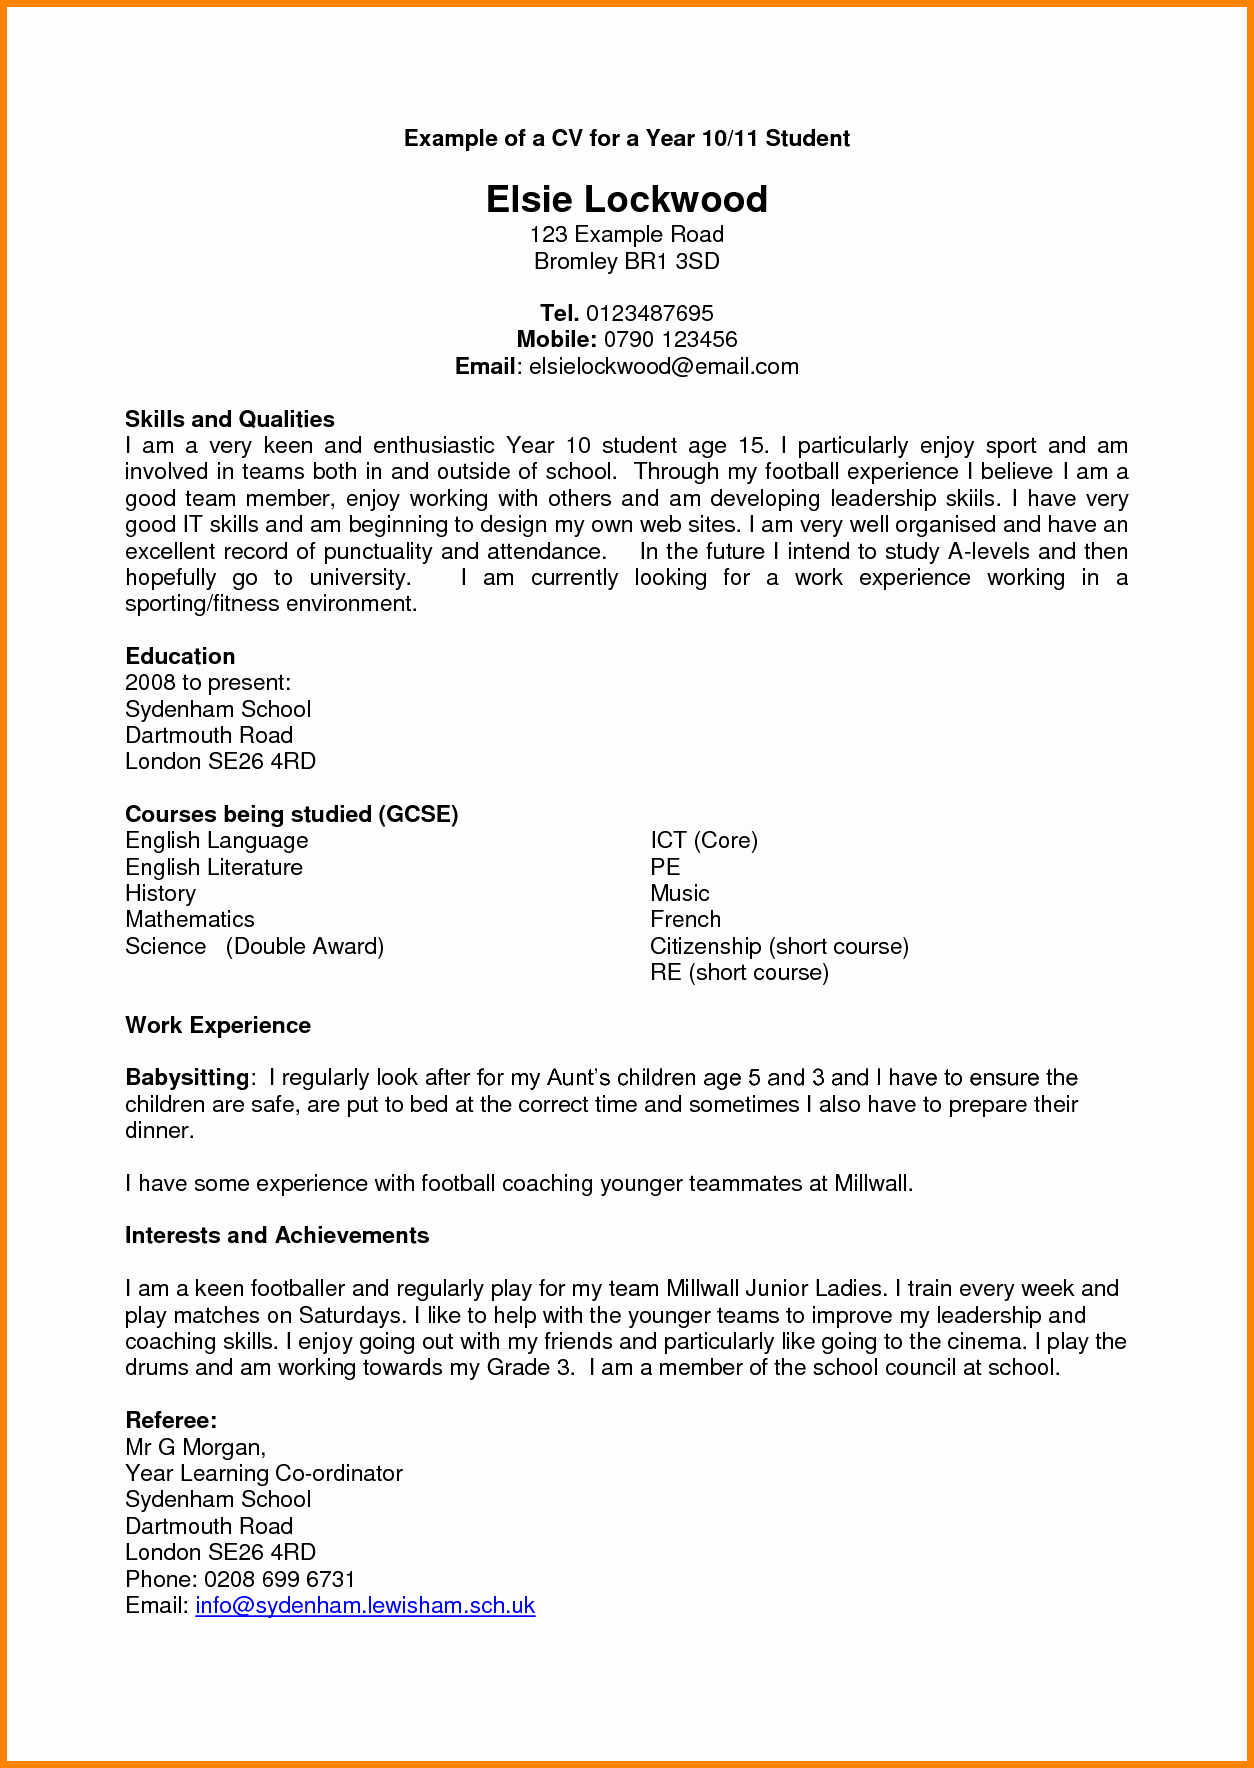 Free Resume Templates for Students New 7 Good Cv Template for Students